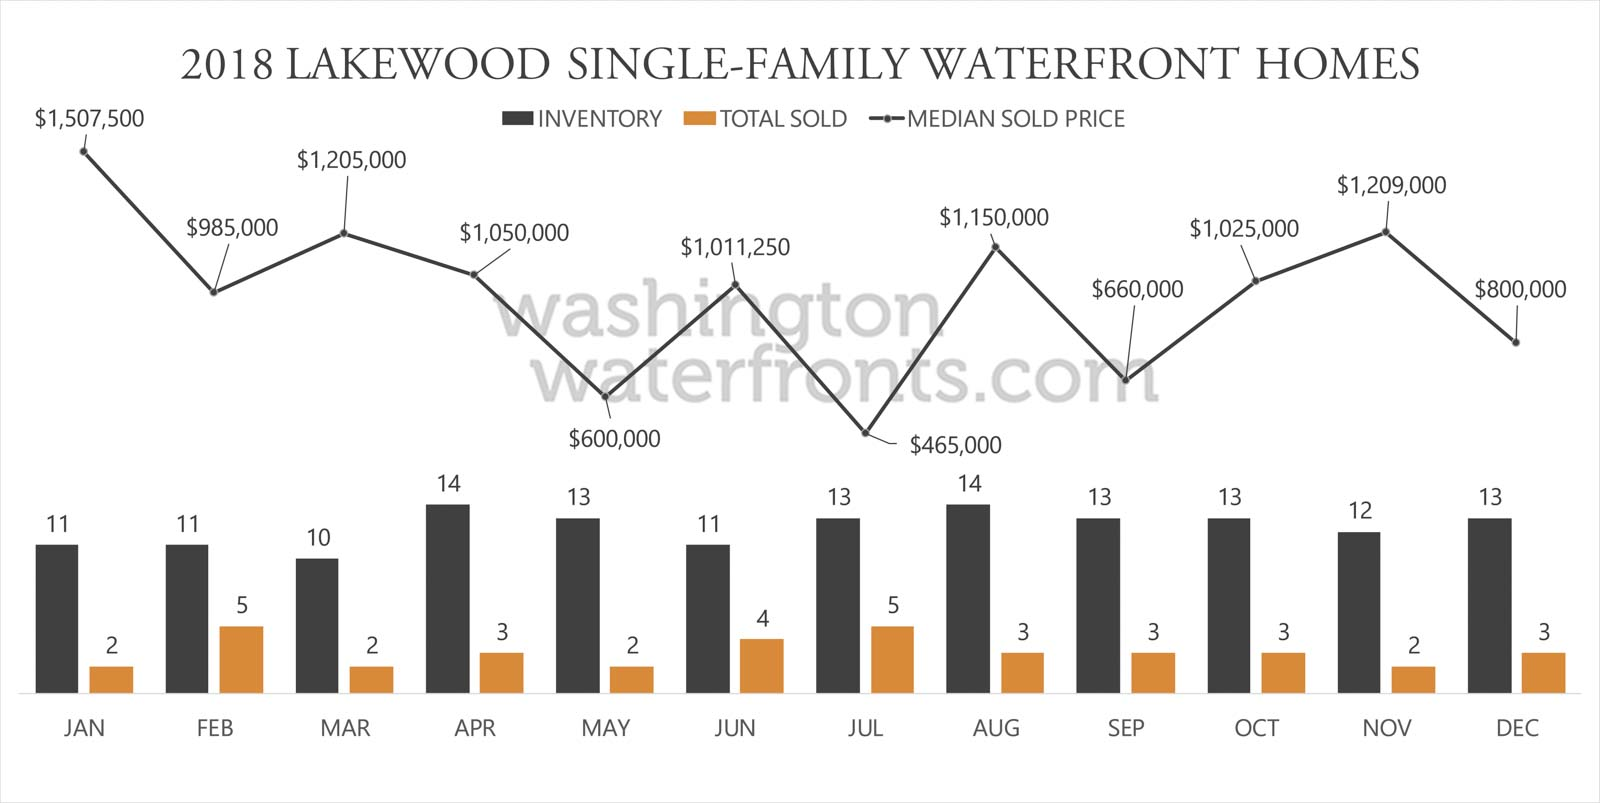 Lakewood Waterfront Inventory